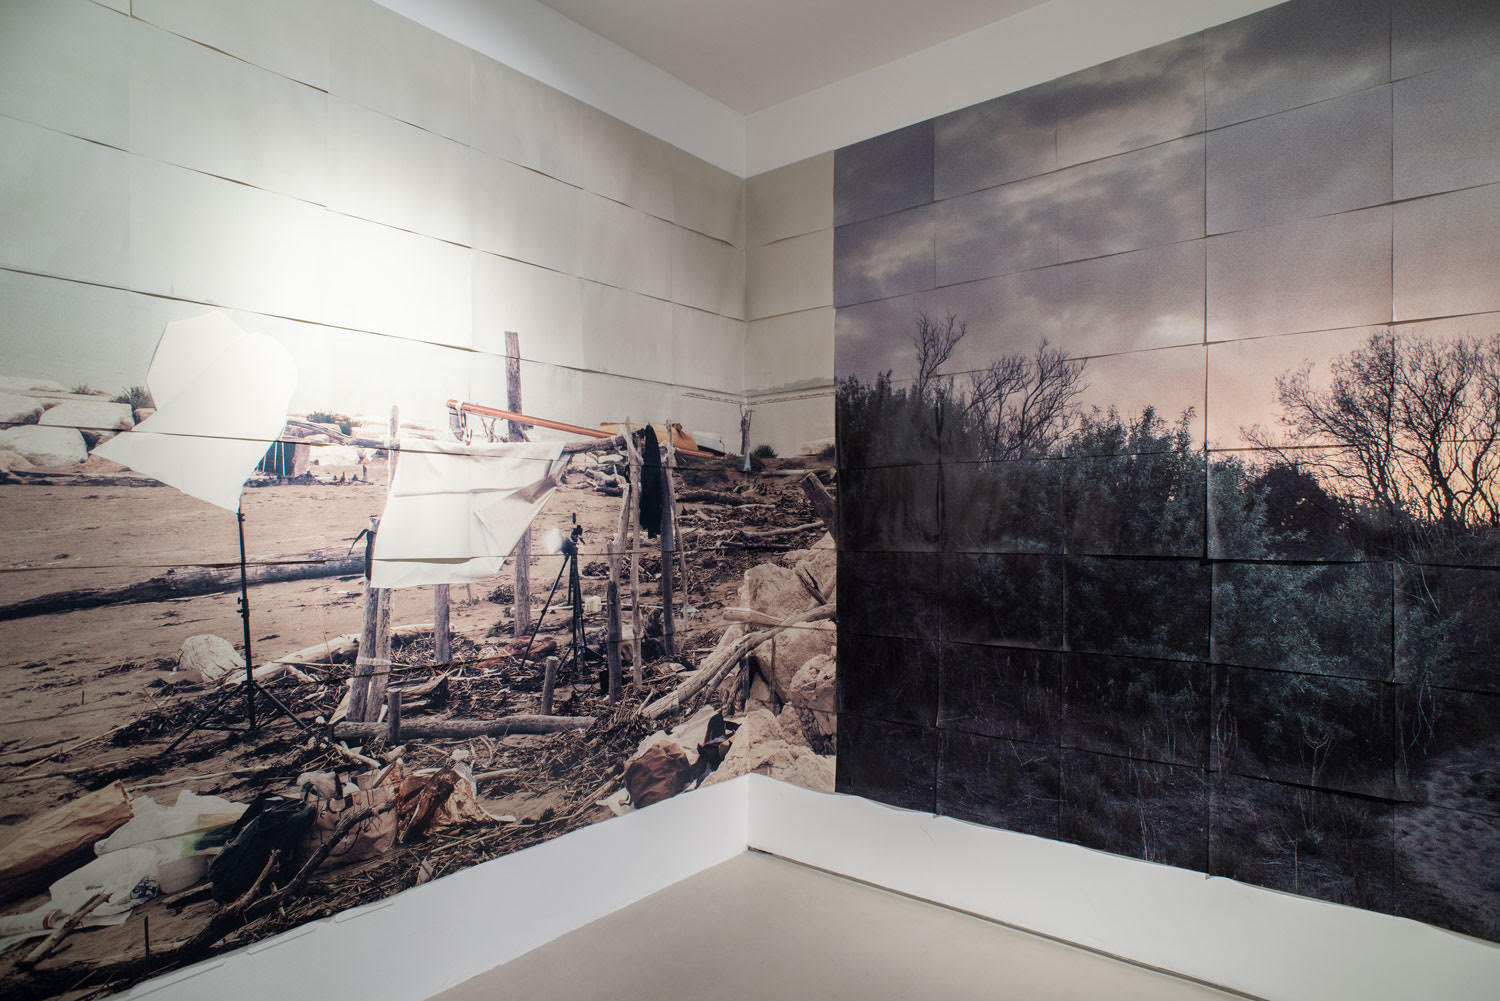 INSTALLATION VIEW _ PH. BY fonderia 20.9